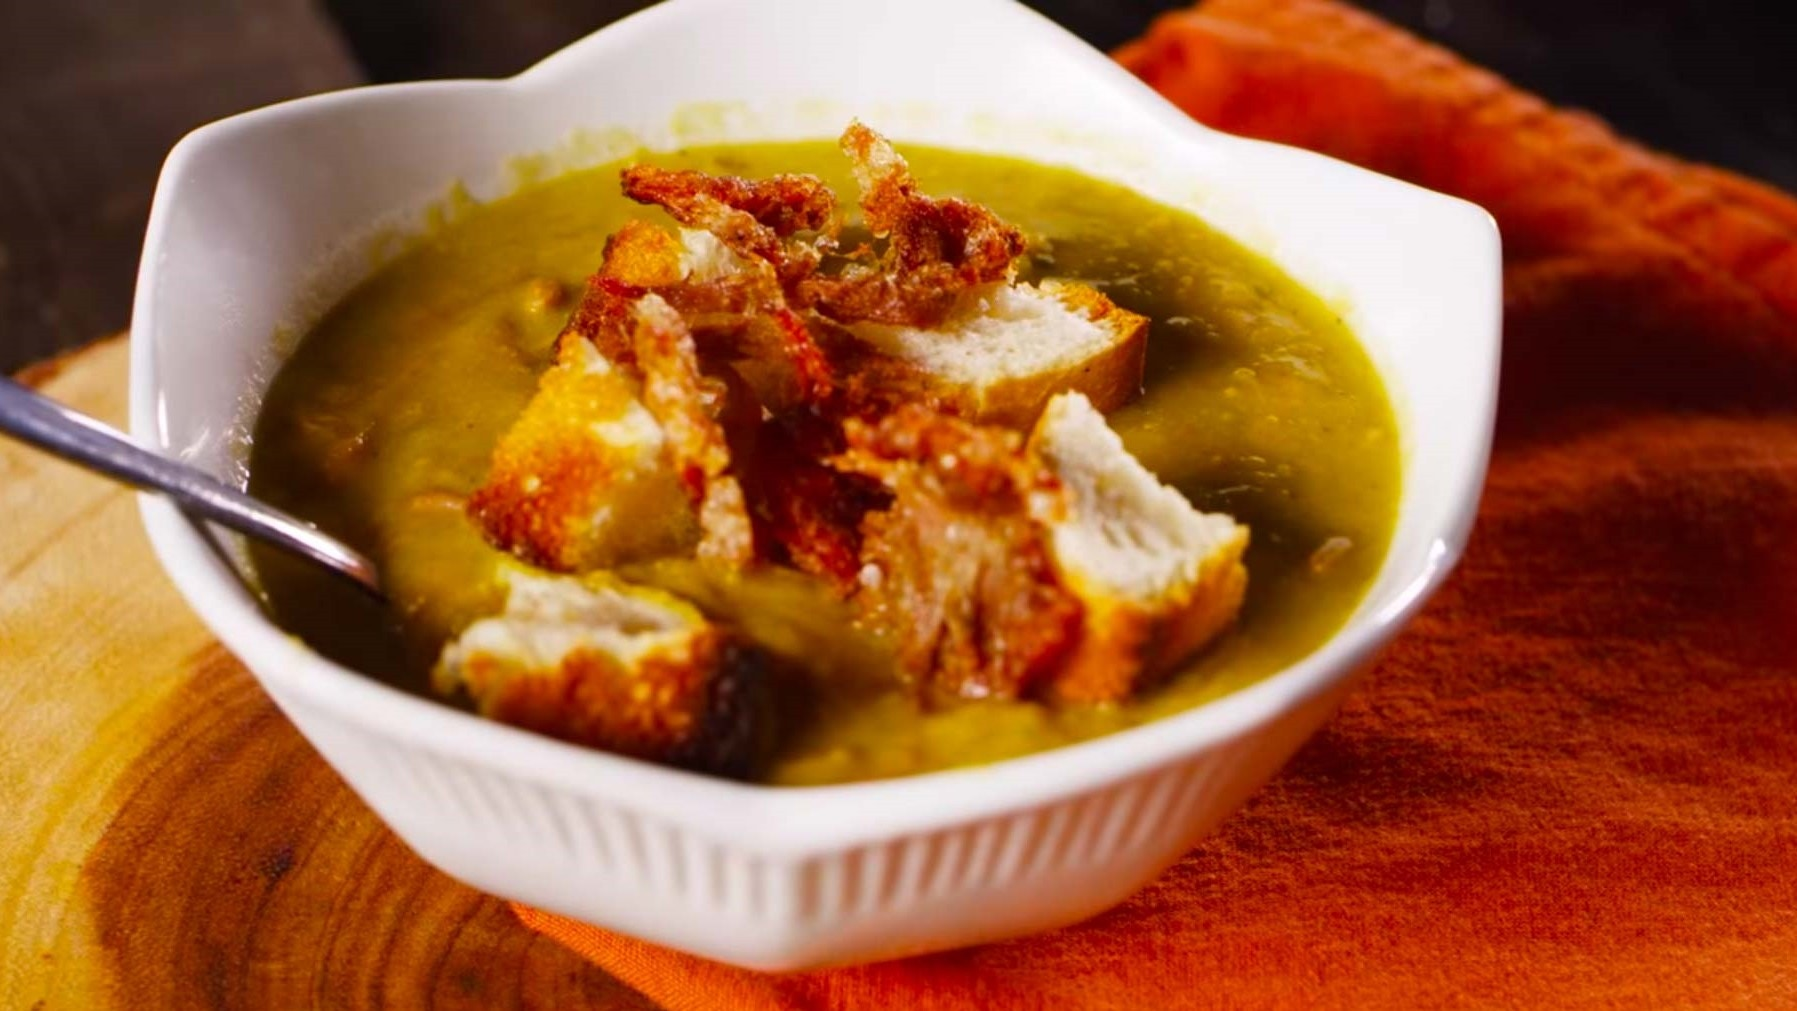 Pulled Pork Split Pea Soup Recipe